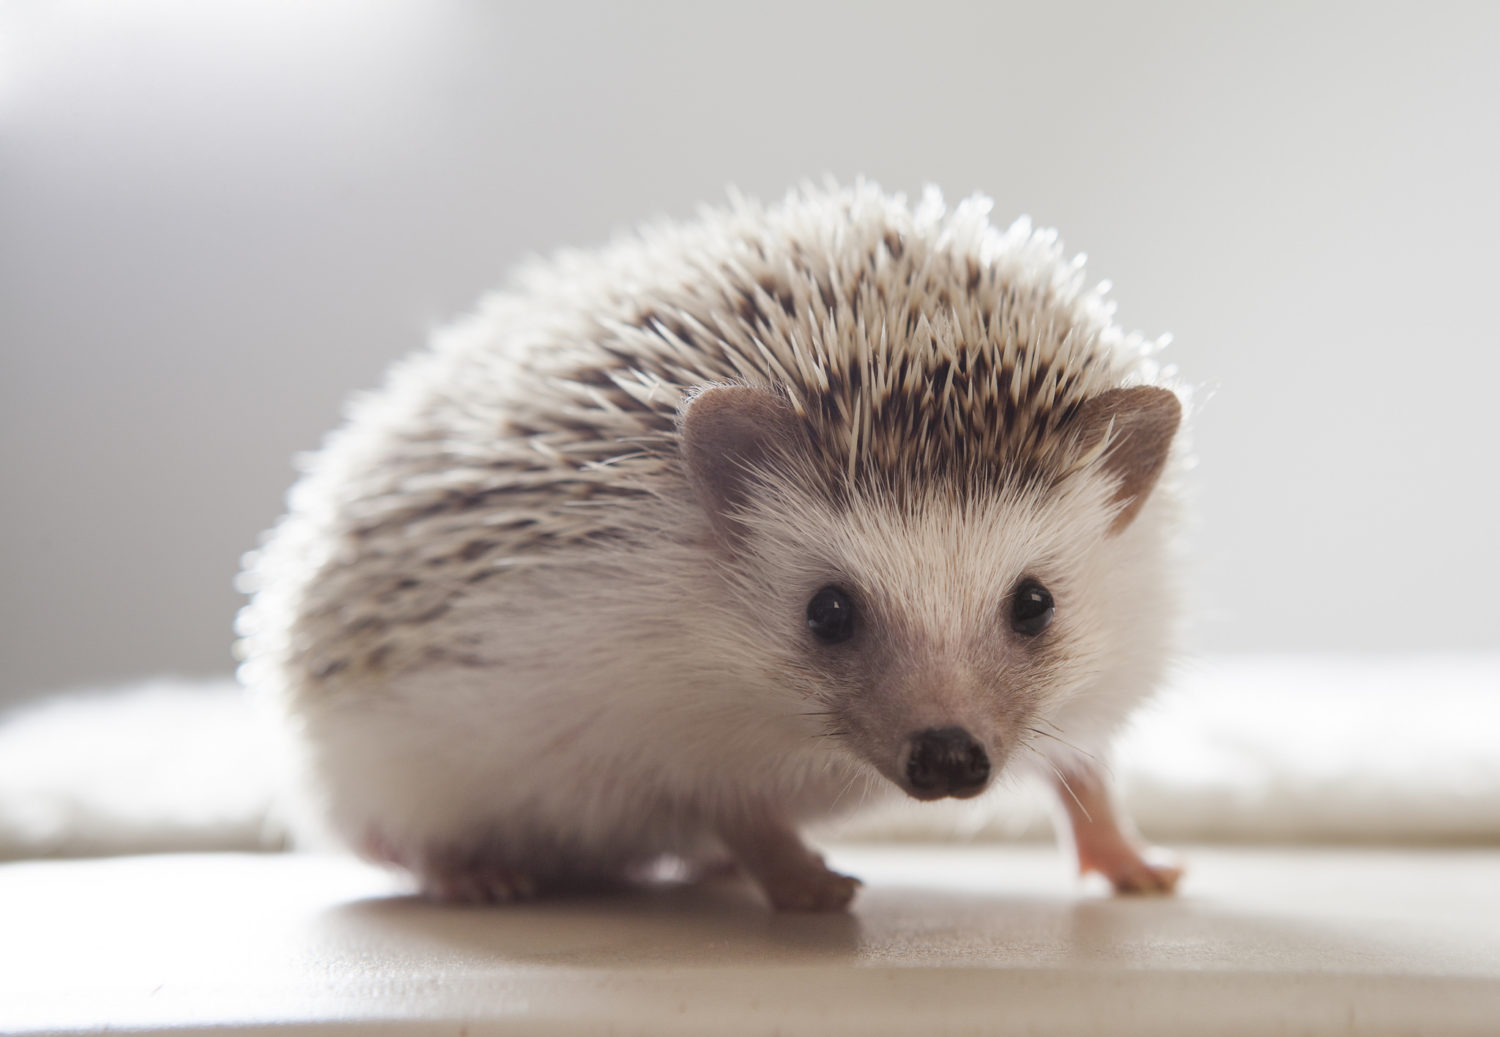 A Brief Guide on Caring for Hedgehogs